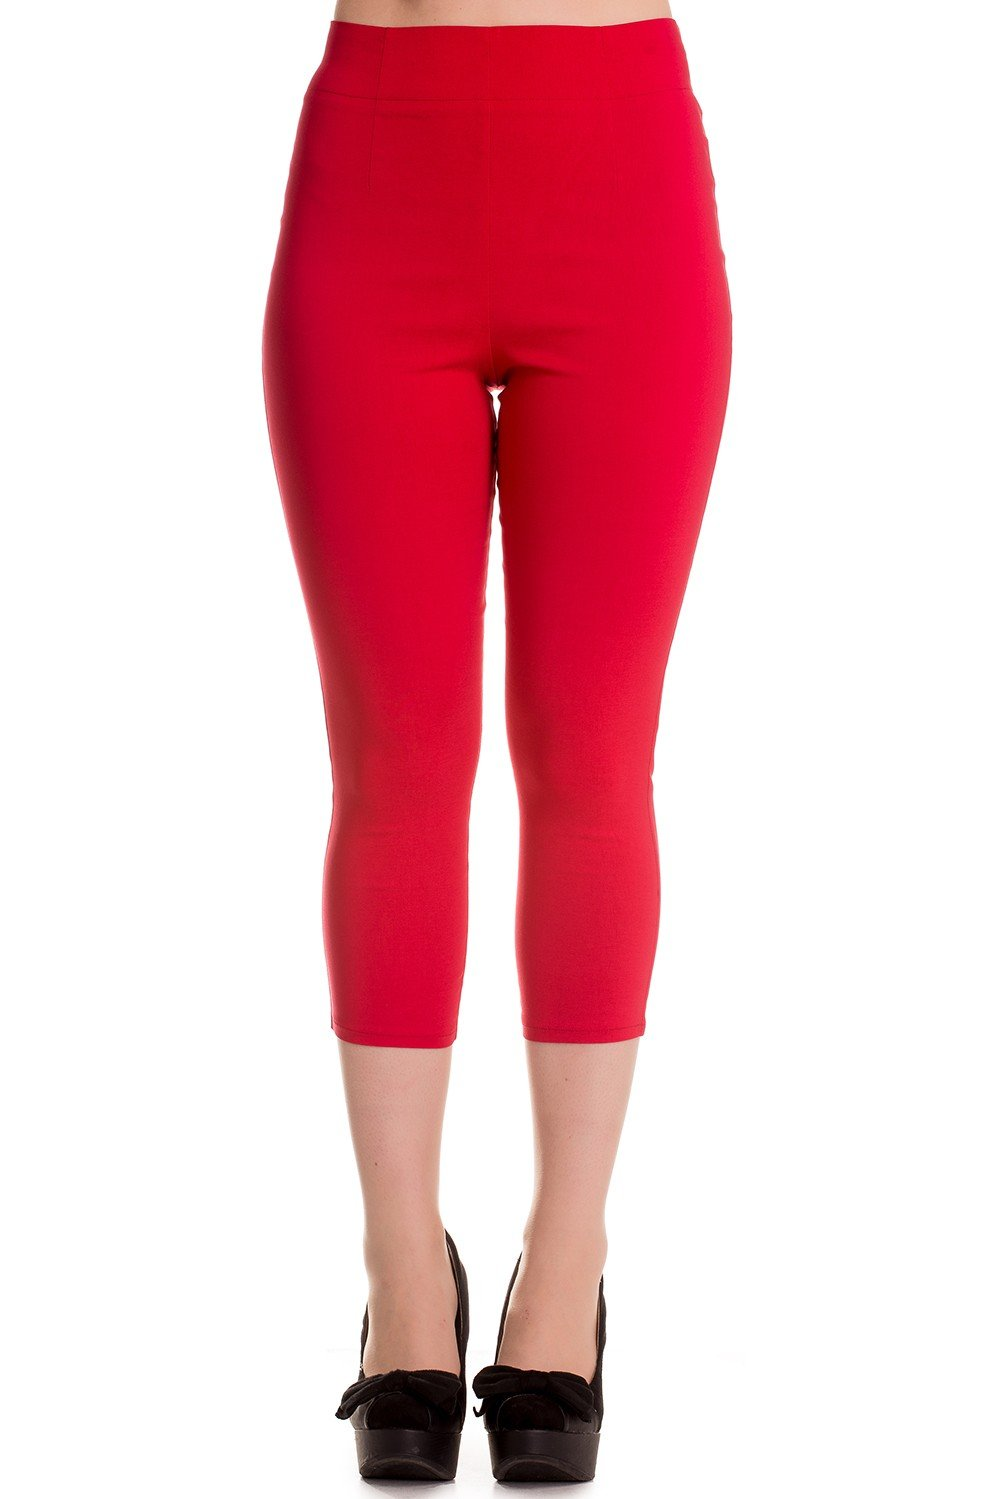 Hell Bunny Tina 50s Vintage Retro Style Capri Trousers 3/4 Length Pedal Pushers - Red (M)